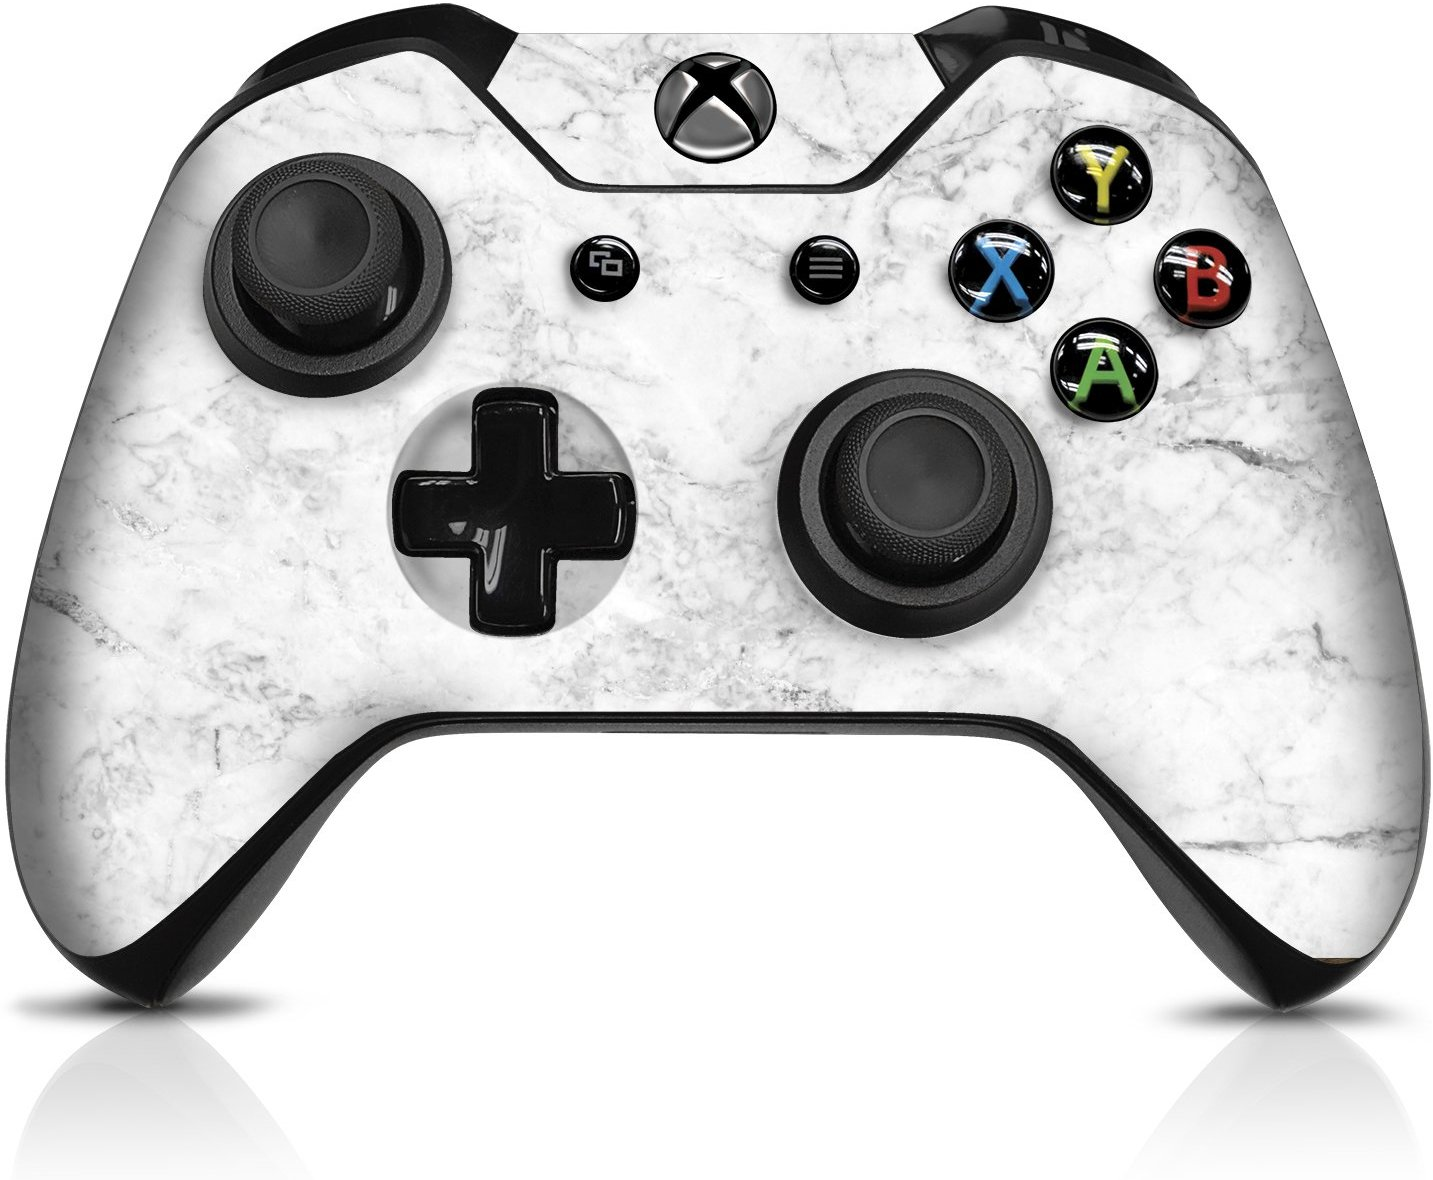 Xbox 360 Controller Drawing At Free For Personal Collection Ps3 Parts Diagram Pictures Diagrams 1433x1180 Gear Marble One Skin